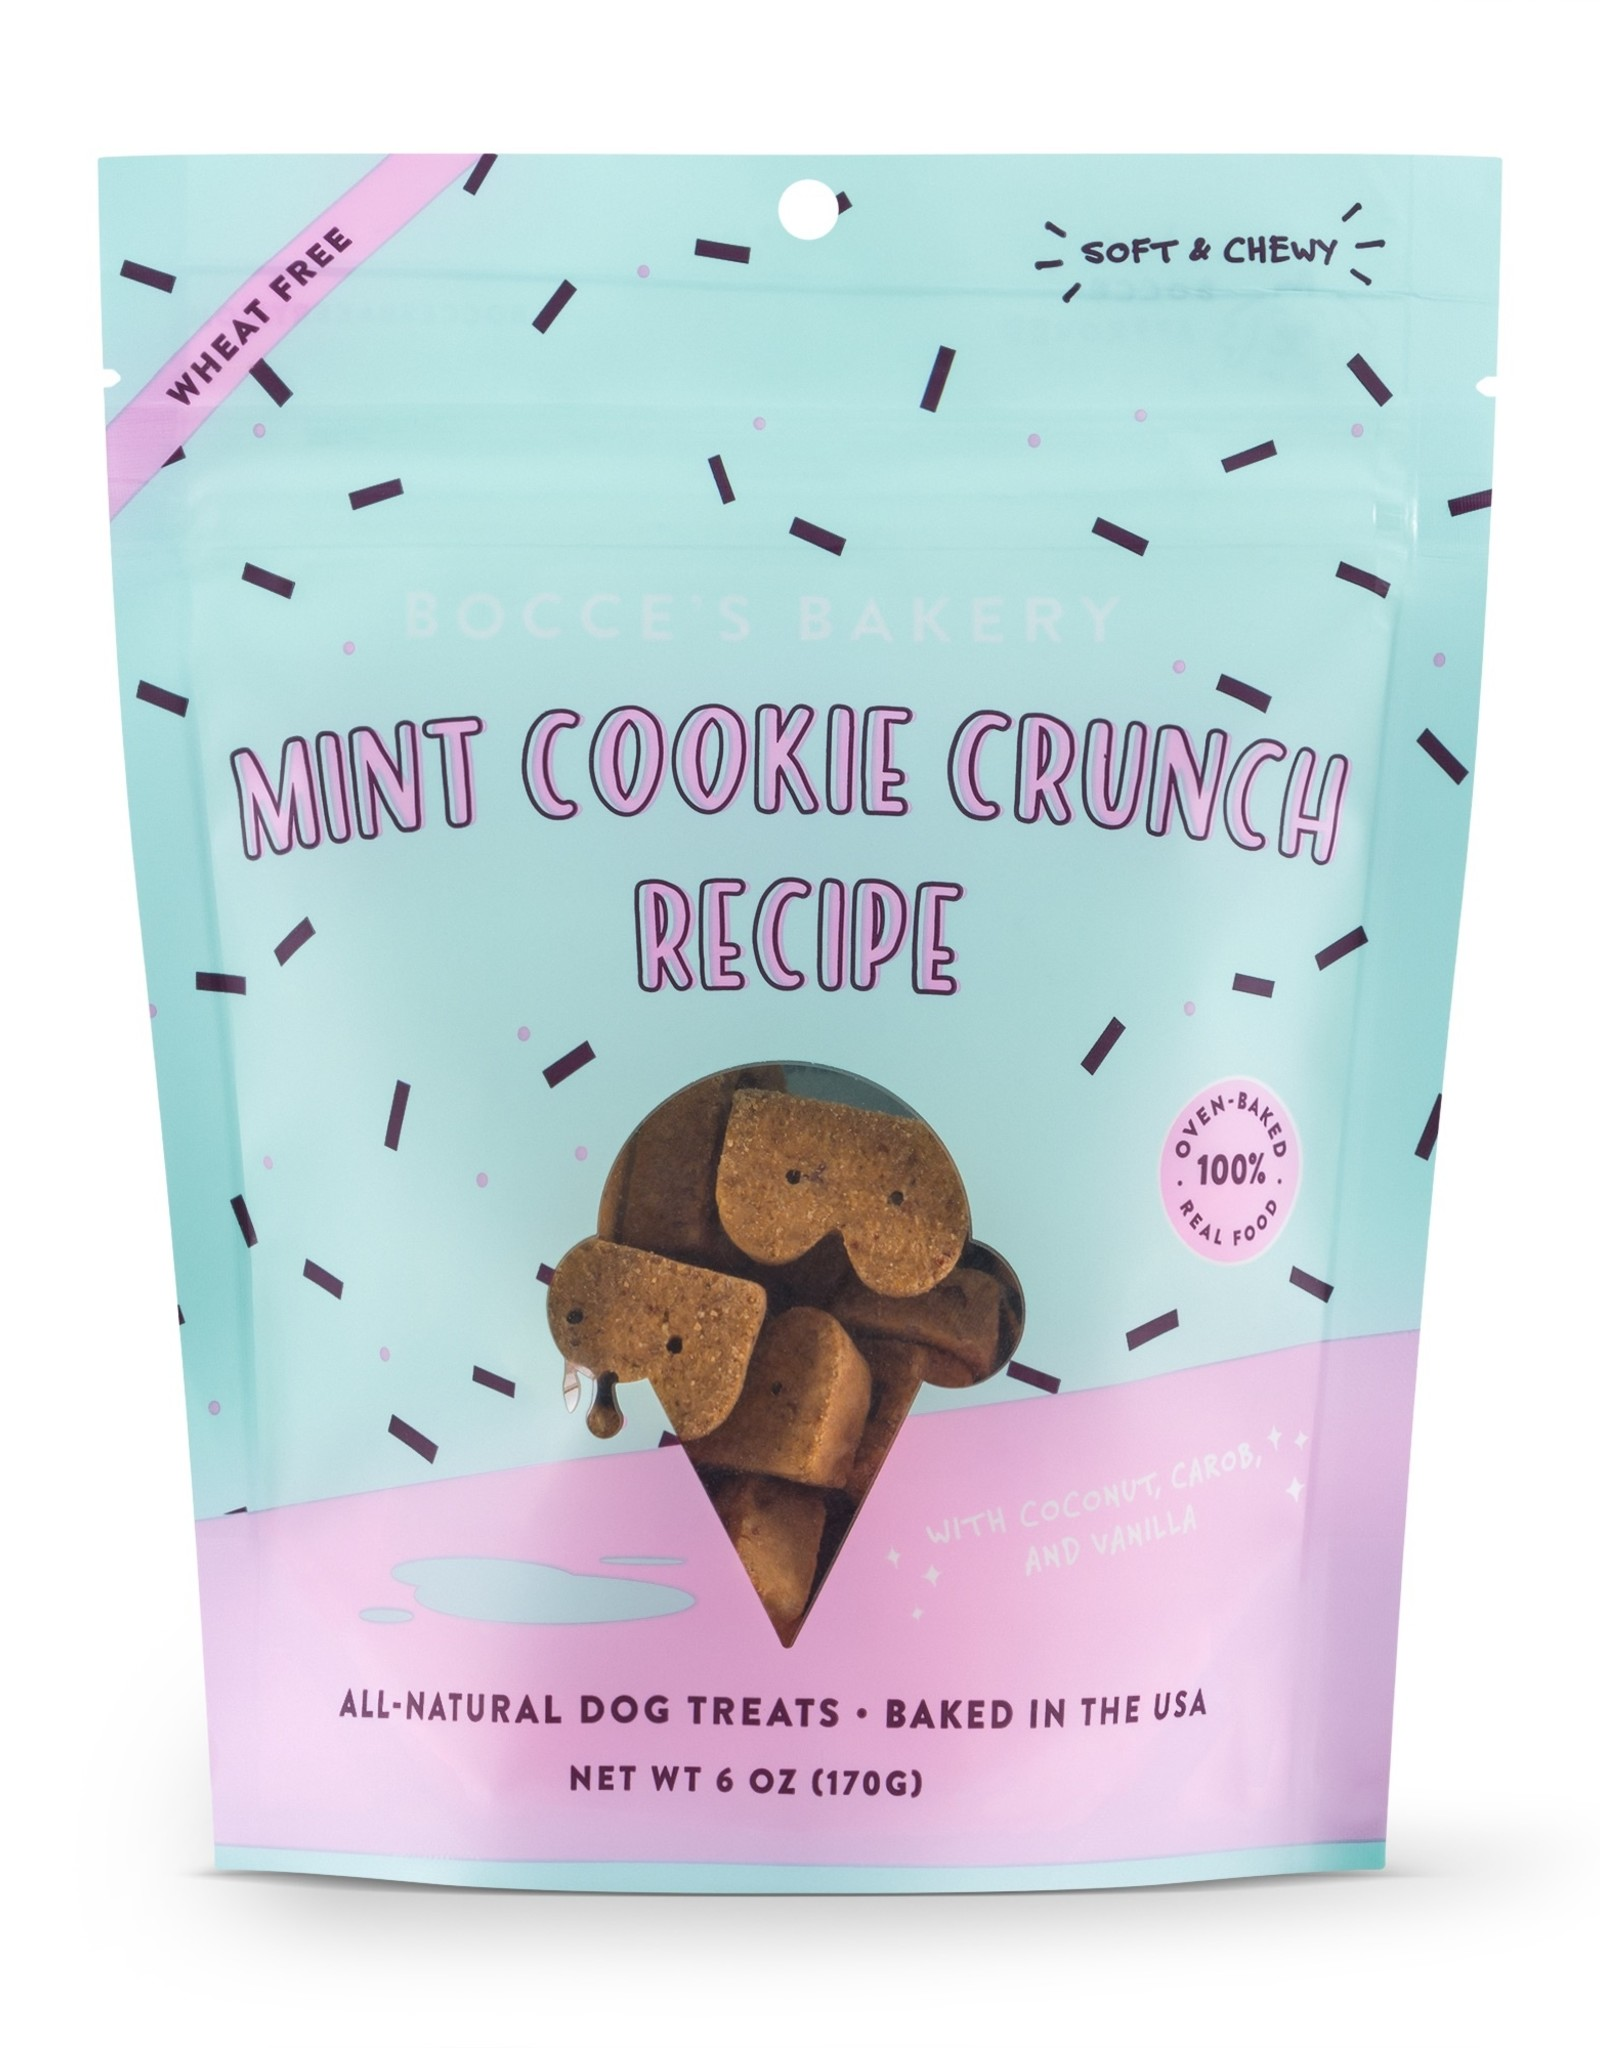 Bocce's Bakery Mint Cookie Crunch Recipe Dog Treats, 6 oz.